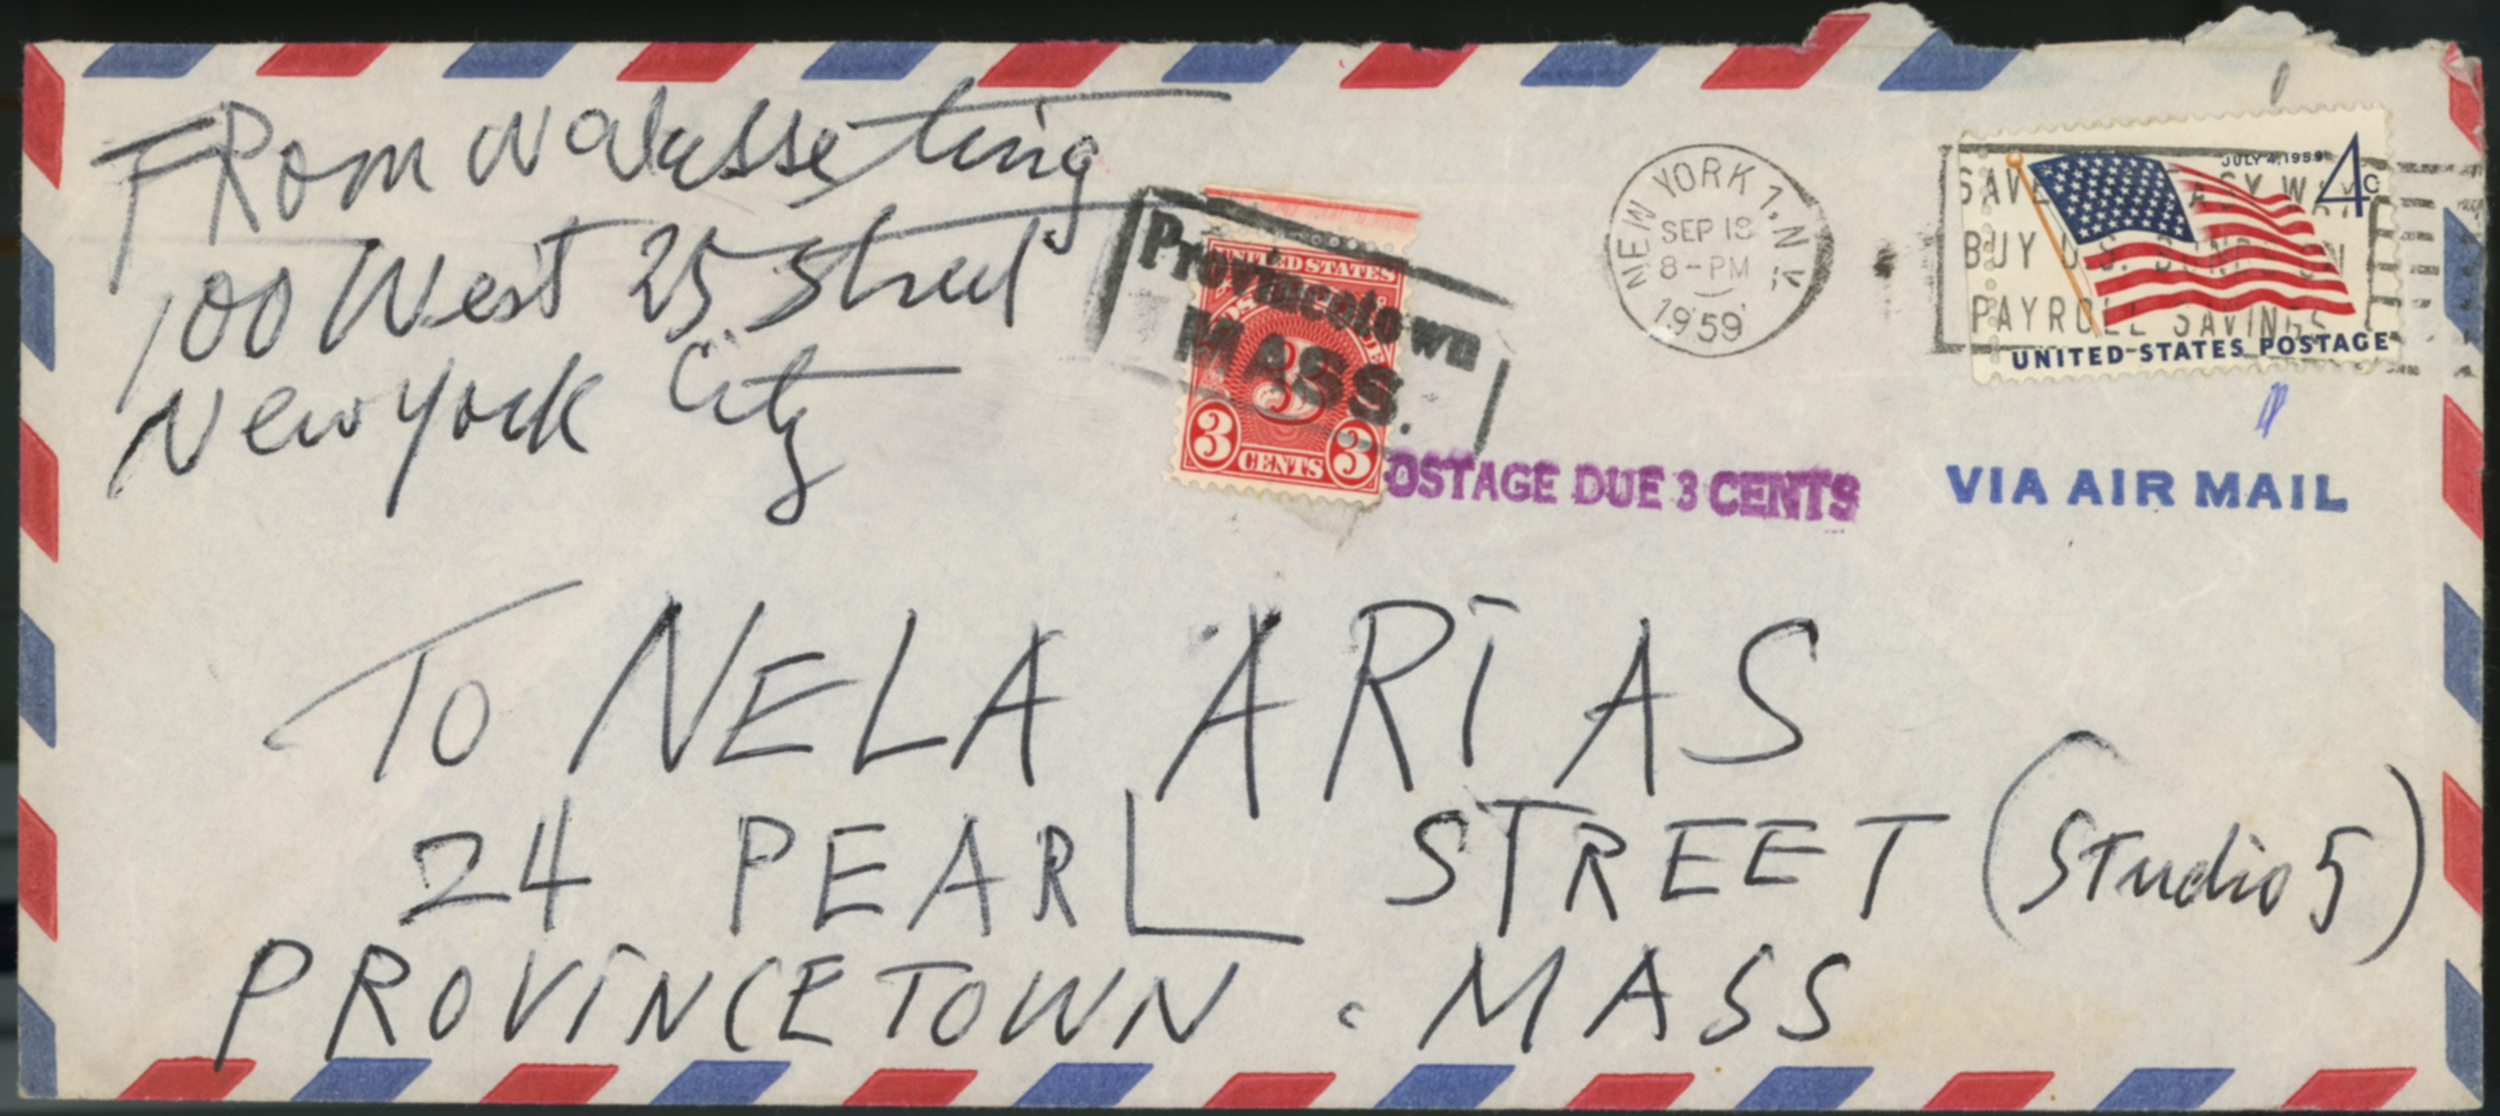 Walasse Ting letter to Nela Arias